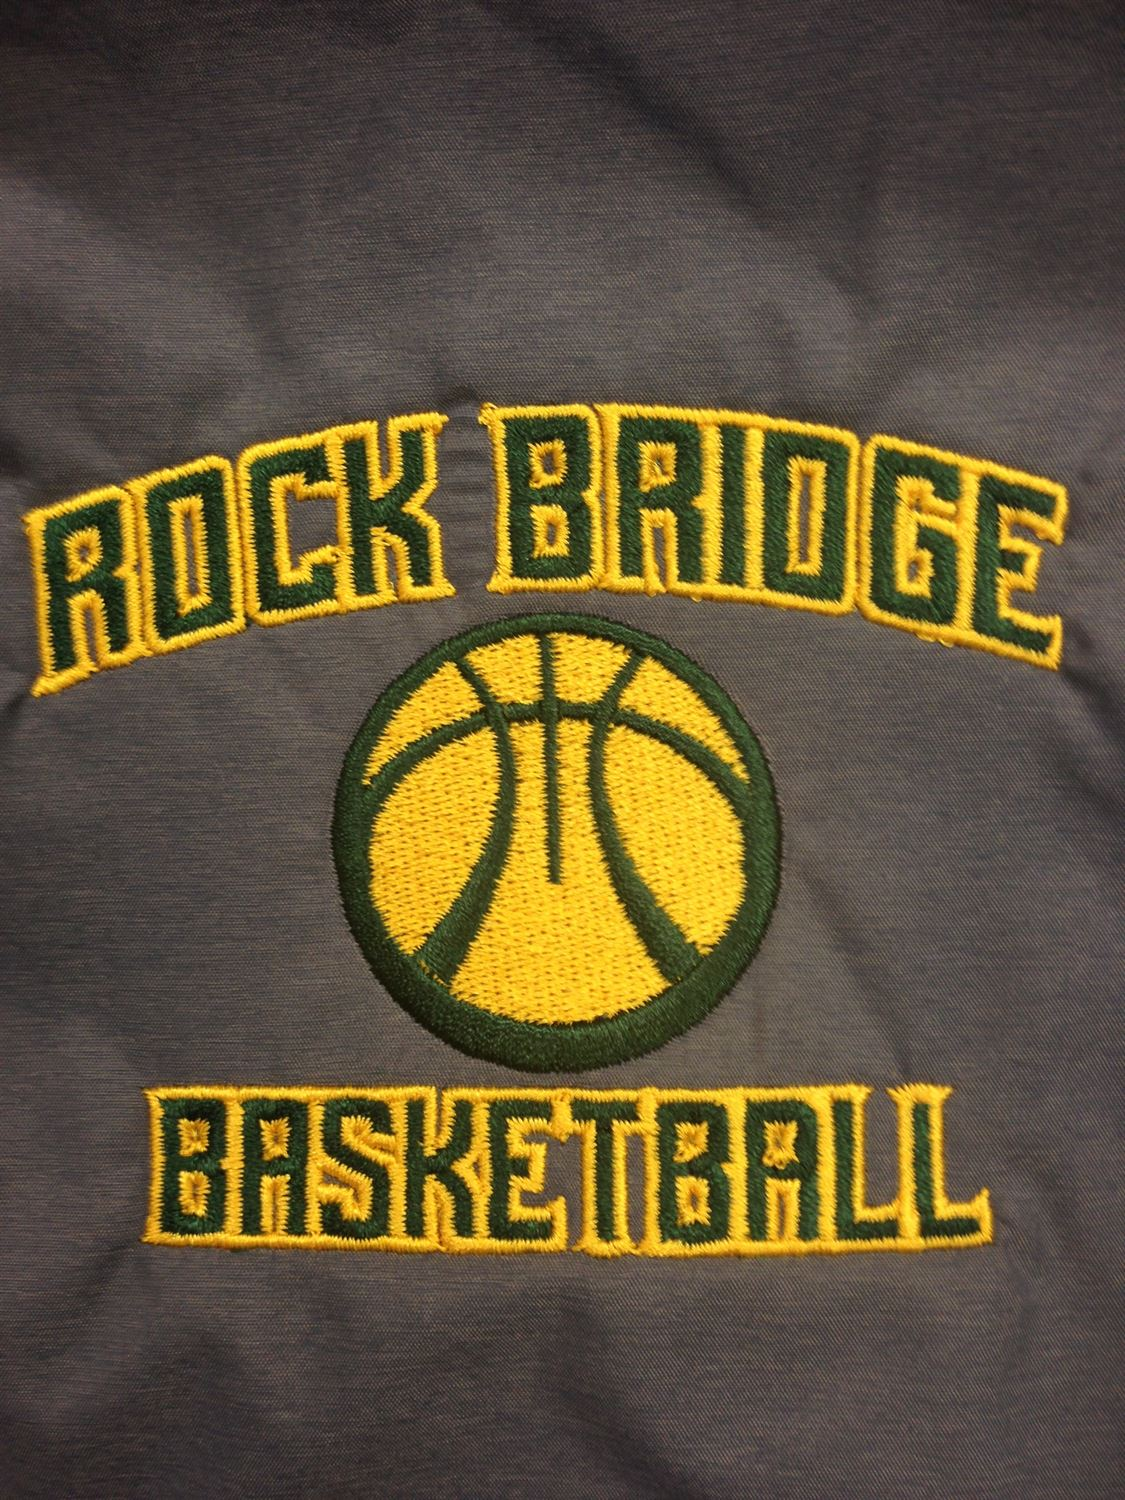 Rock Bridge High School - Men's Varsity Basketball